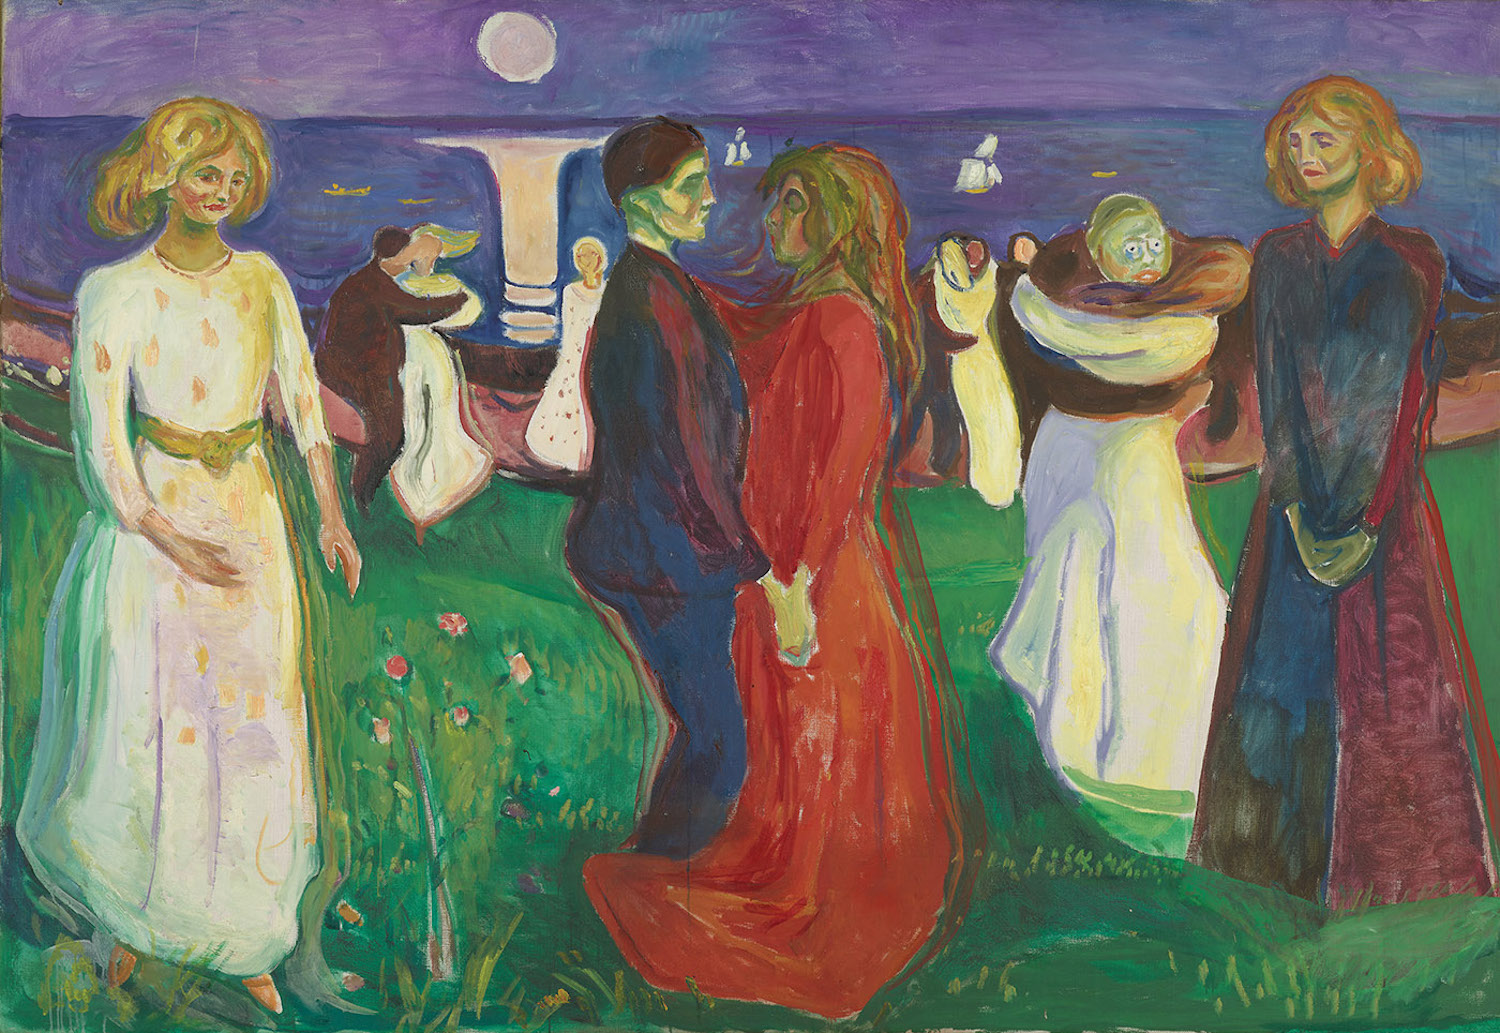 The Dance of Life by Edvard Munch, 1925; oil on canvas   Article written by Jerry N Weiss for Artists Magazine